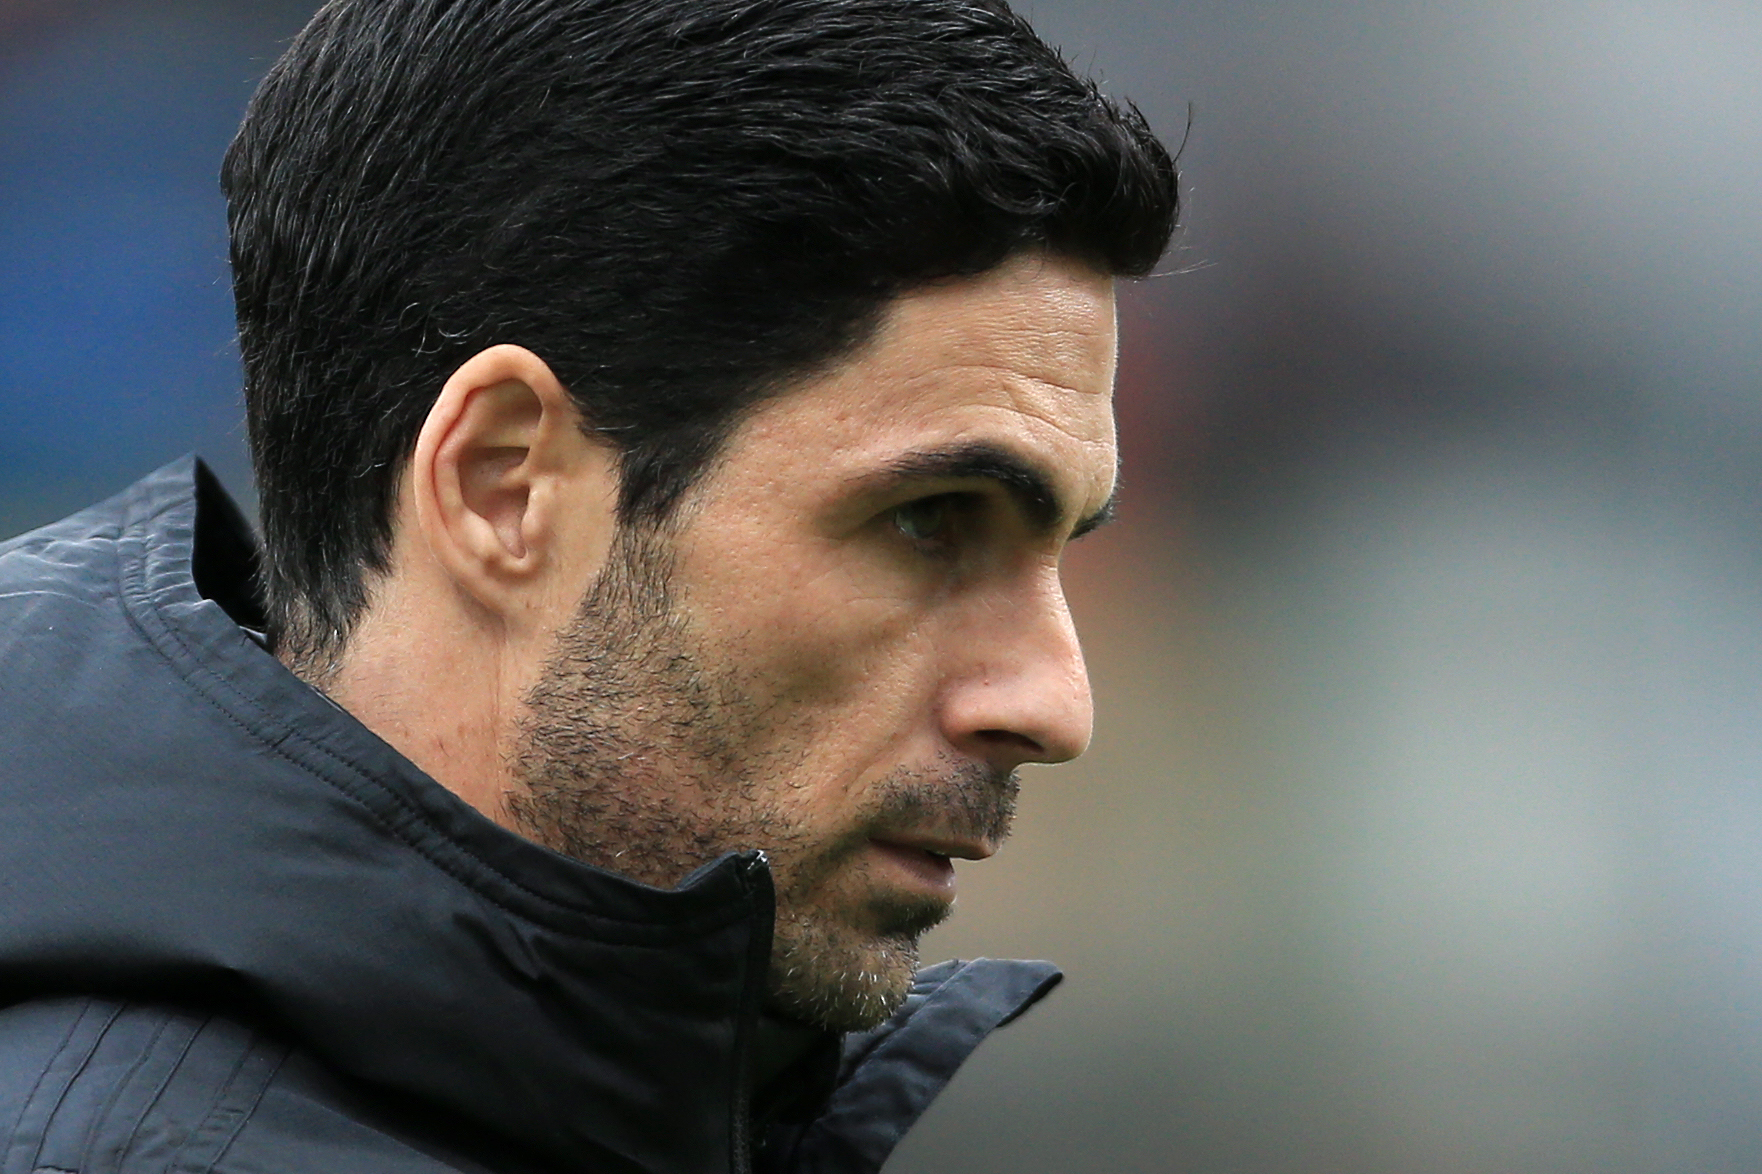 NEWS: Arsenal boss Mikel Arteta ramps-up interest in £25m Bayer Leverkusen left-winger Moussa Diaby